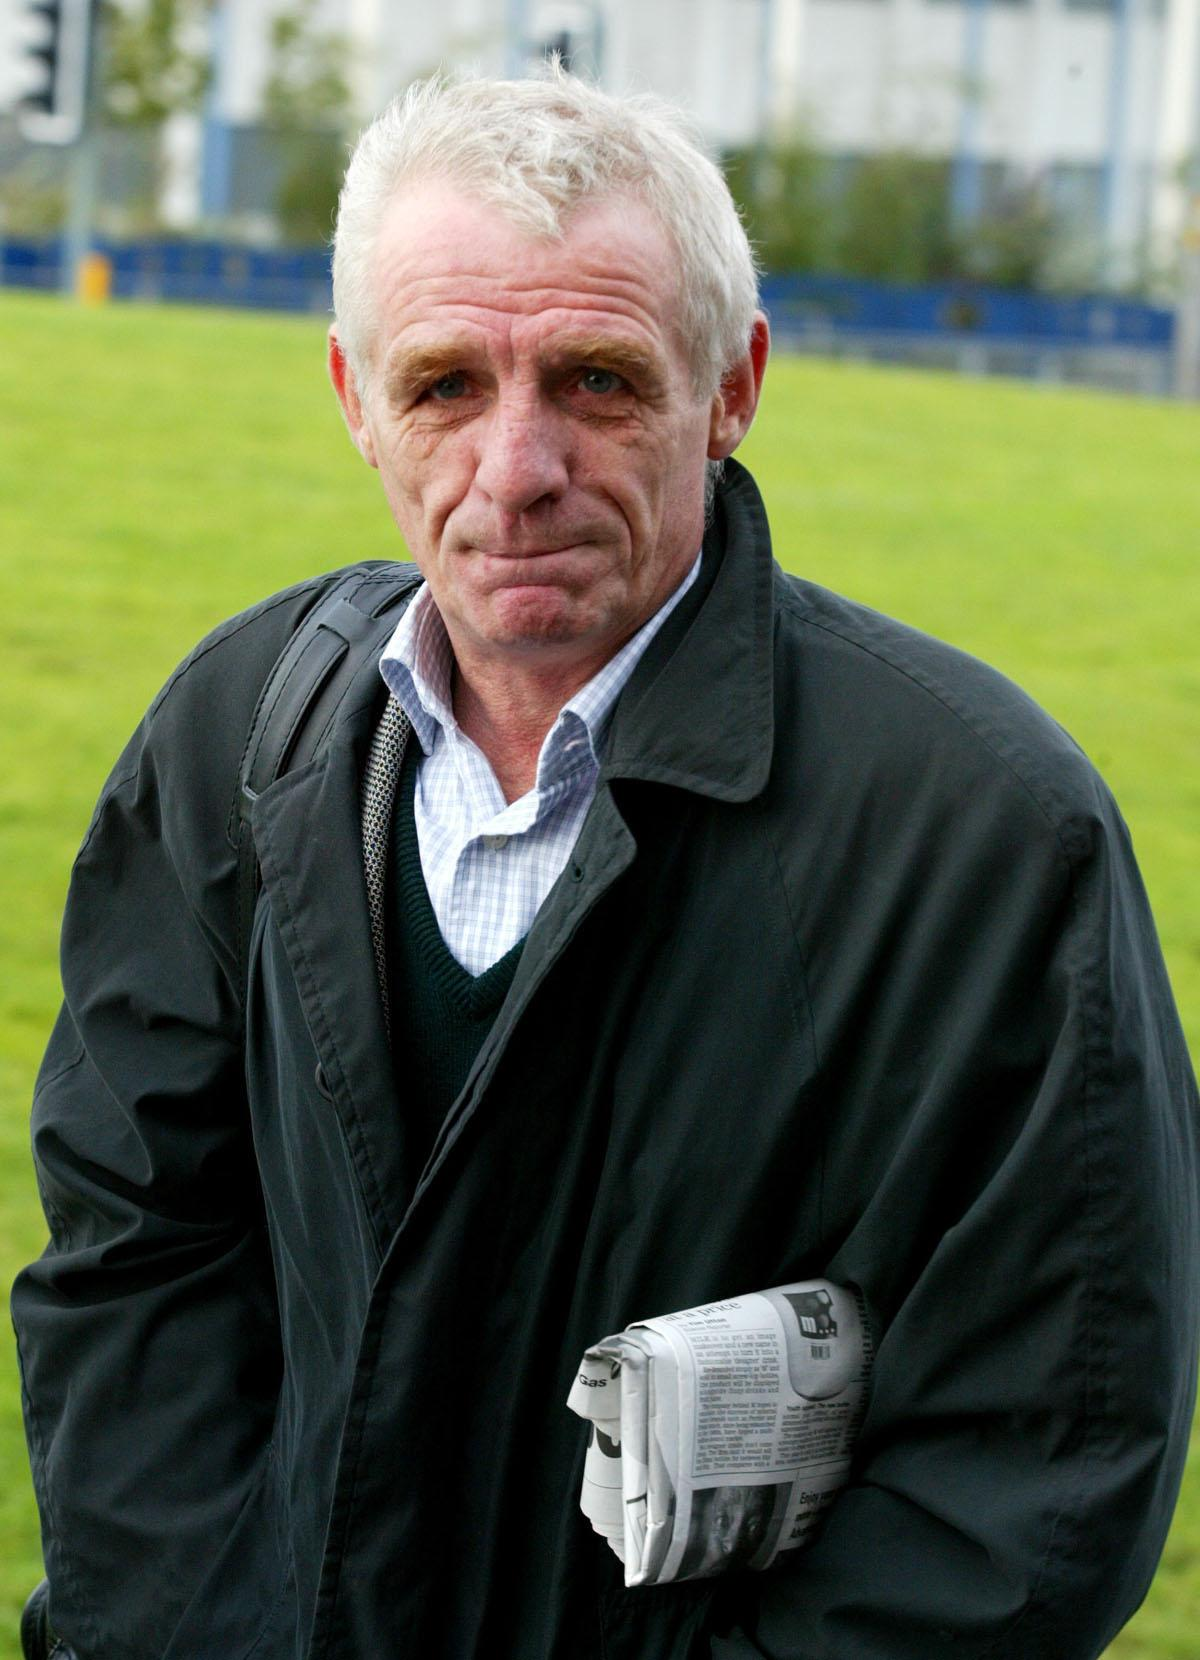 EXCLUSIVE: Eamon Dunphy interview on the state of Manchester United, Paul Pogba, and more